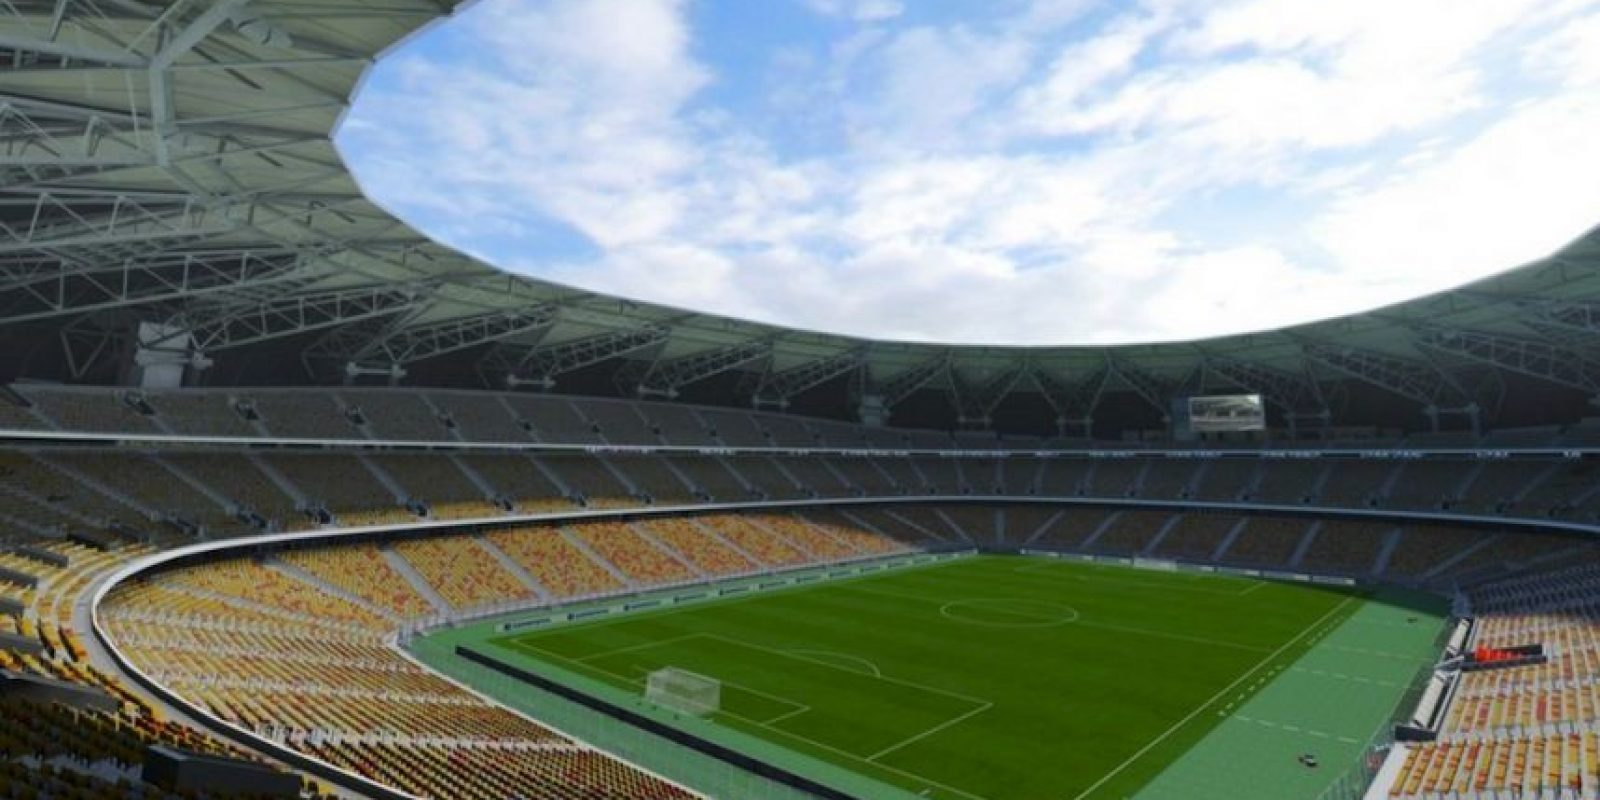 King Abdullah Sports City (Al-Ittihad y Al-Ahli, Abdul Latif Jameel League de Arabia Saudita) Foto: EA Sports